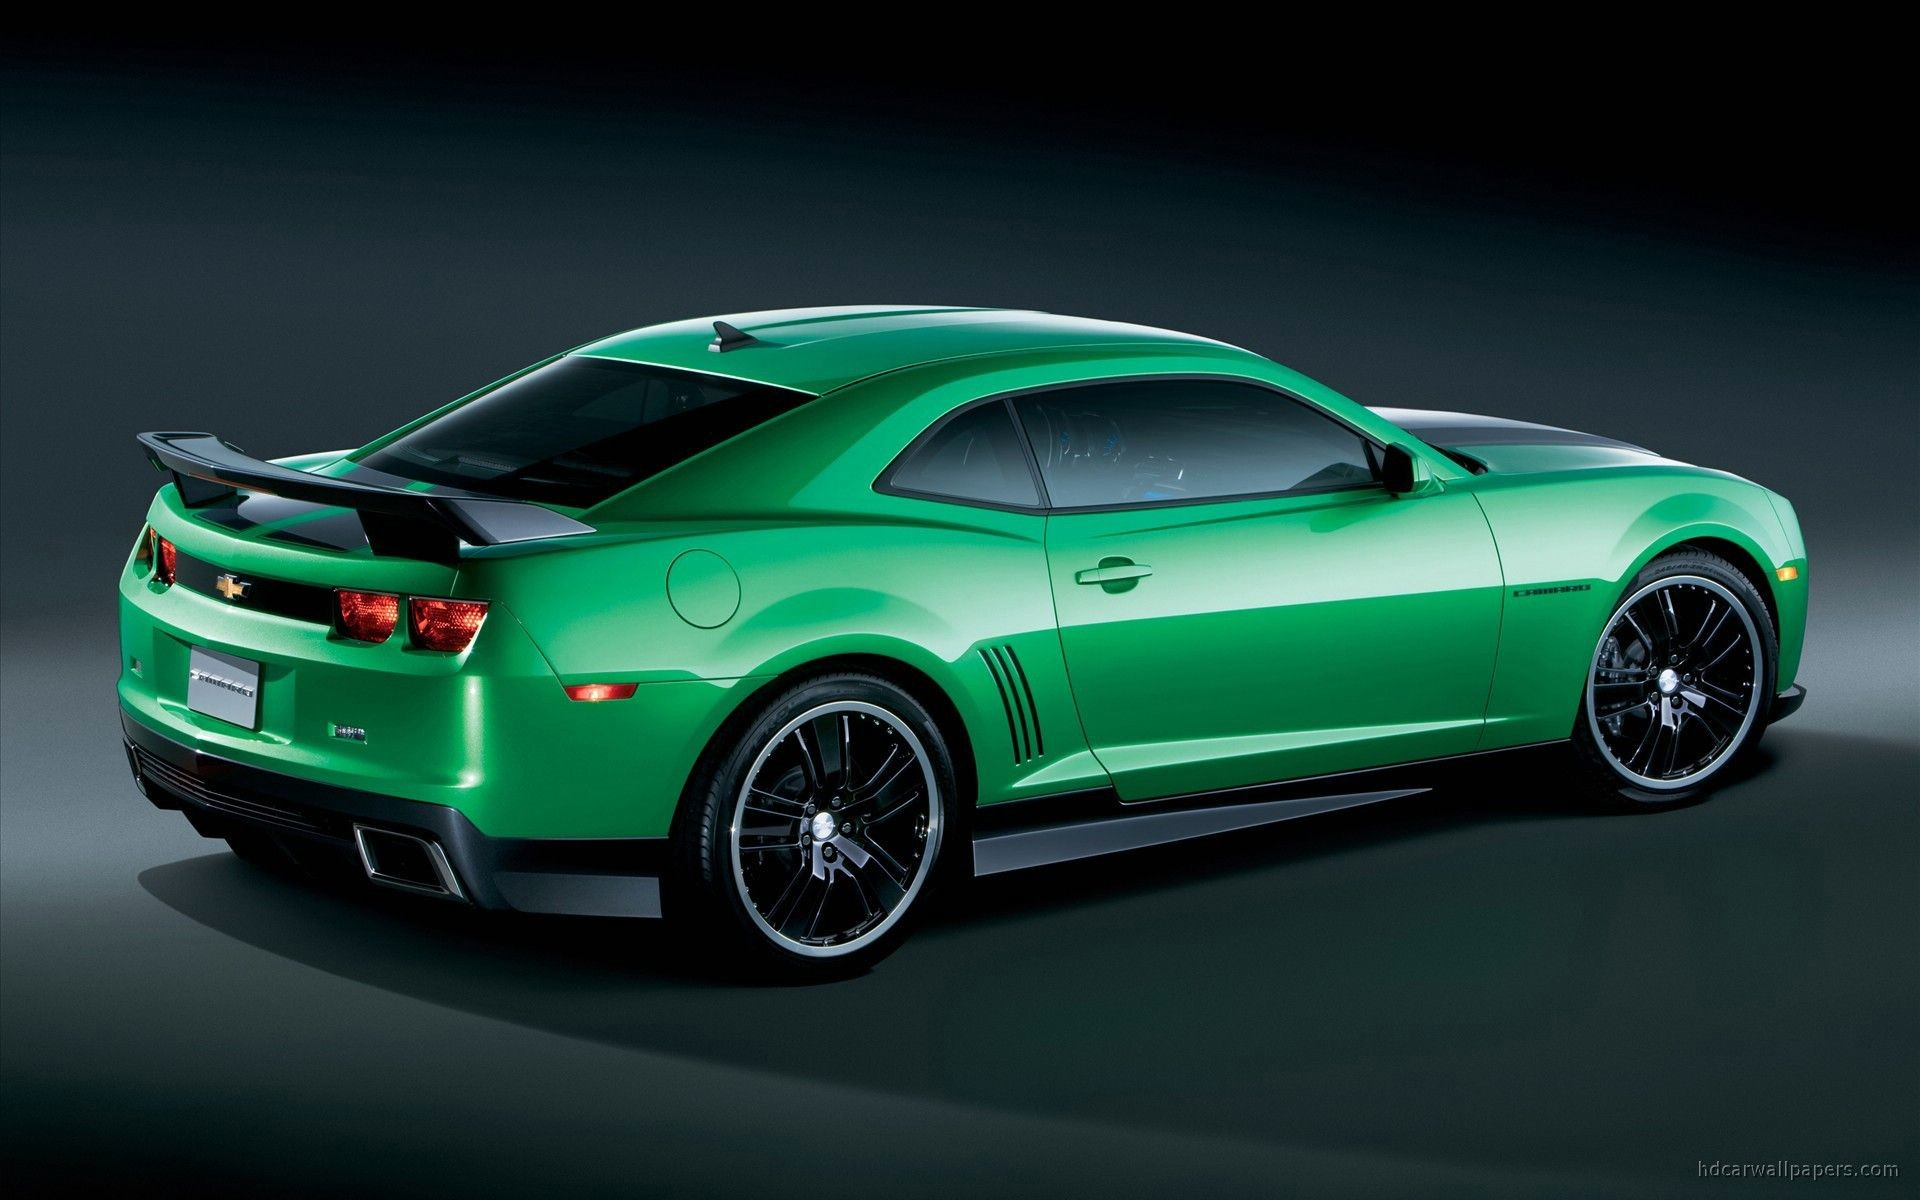 Res: 1920x1200, chevrolet camaro synergy 2 hd wallpapers http://www.hdcarwallpapers.in/